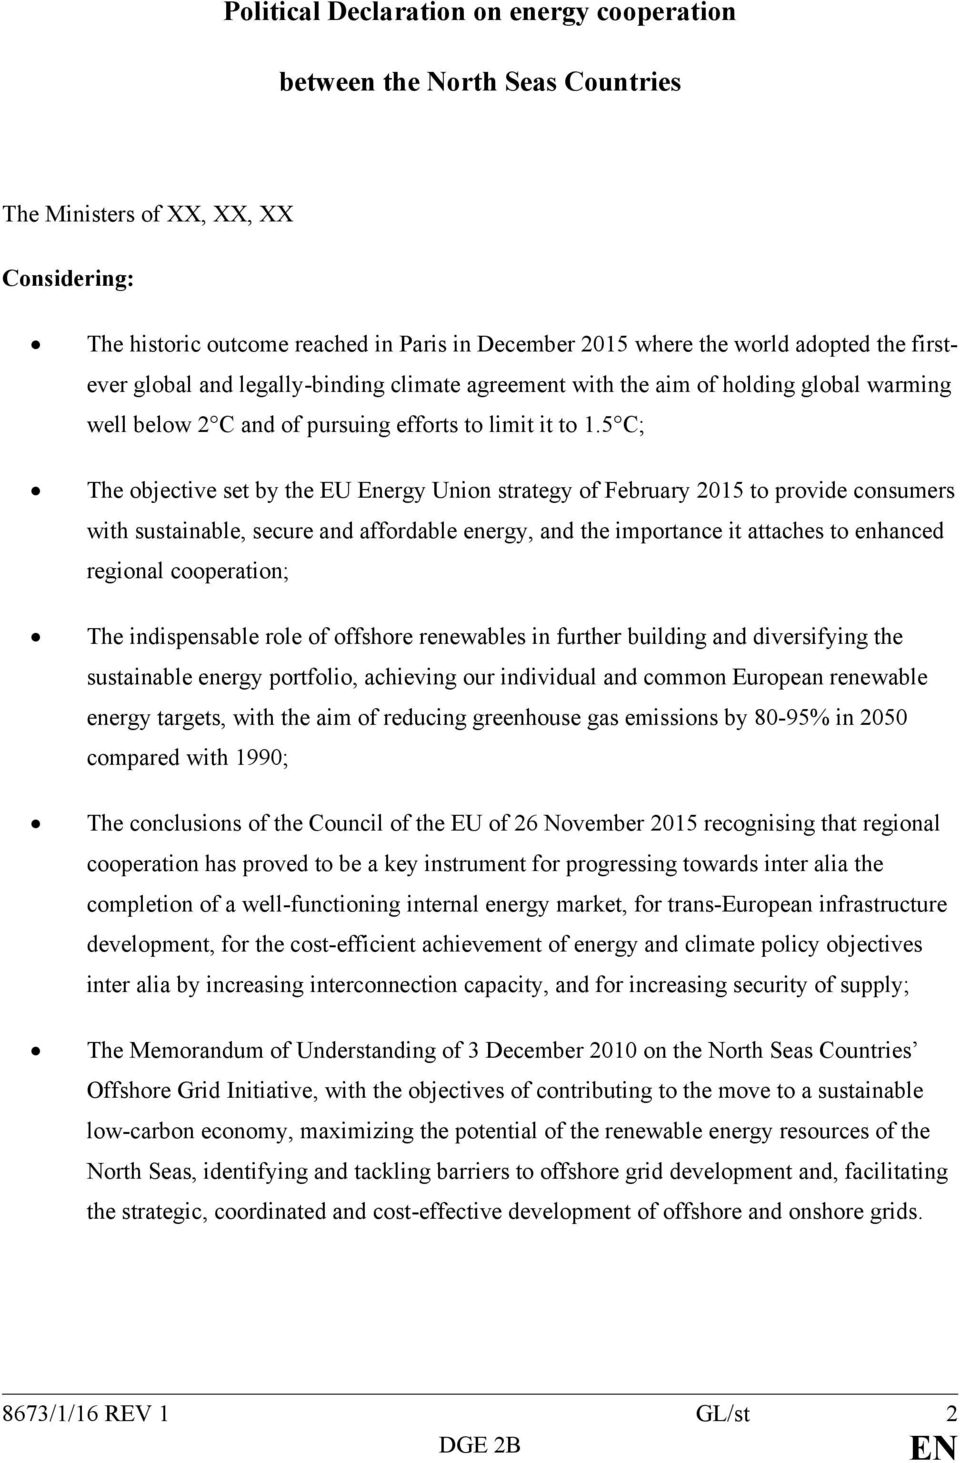 5 C; The objective set by the EU Energy Union strategy of February 2015 to provide consumers with sustainable, secure and affordable energy, and the importance it attaches to enhanced regional